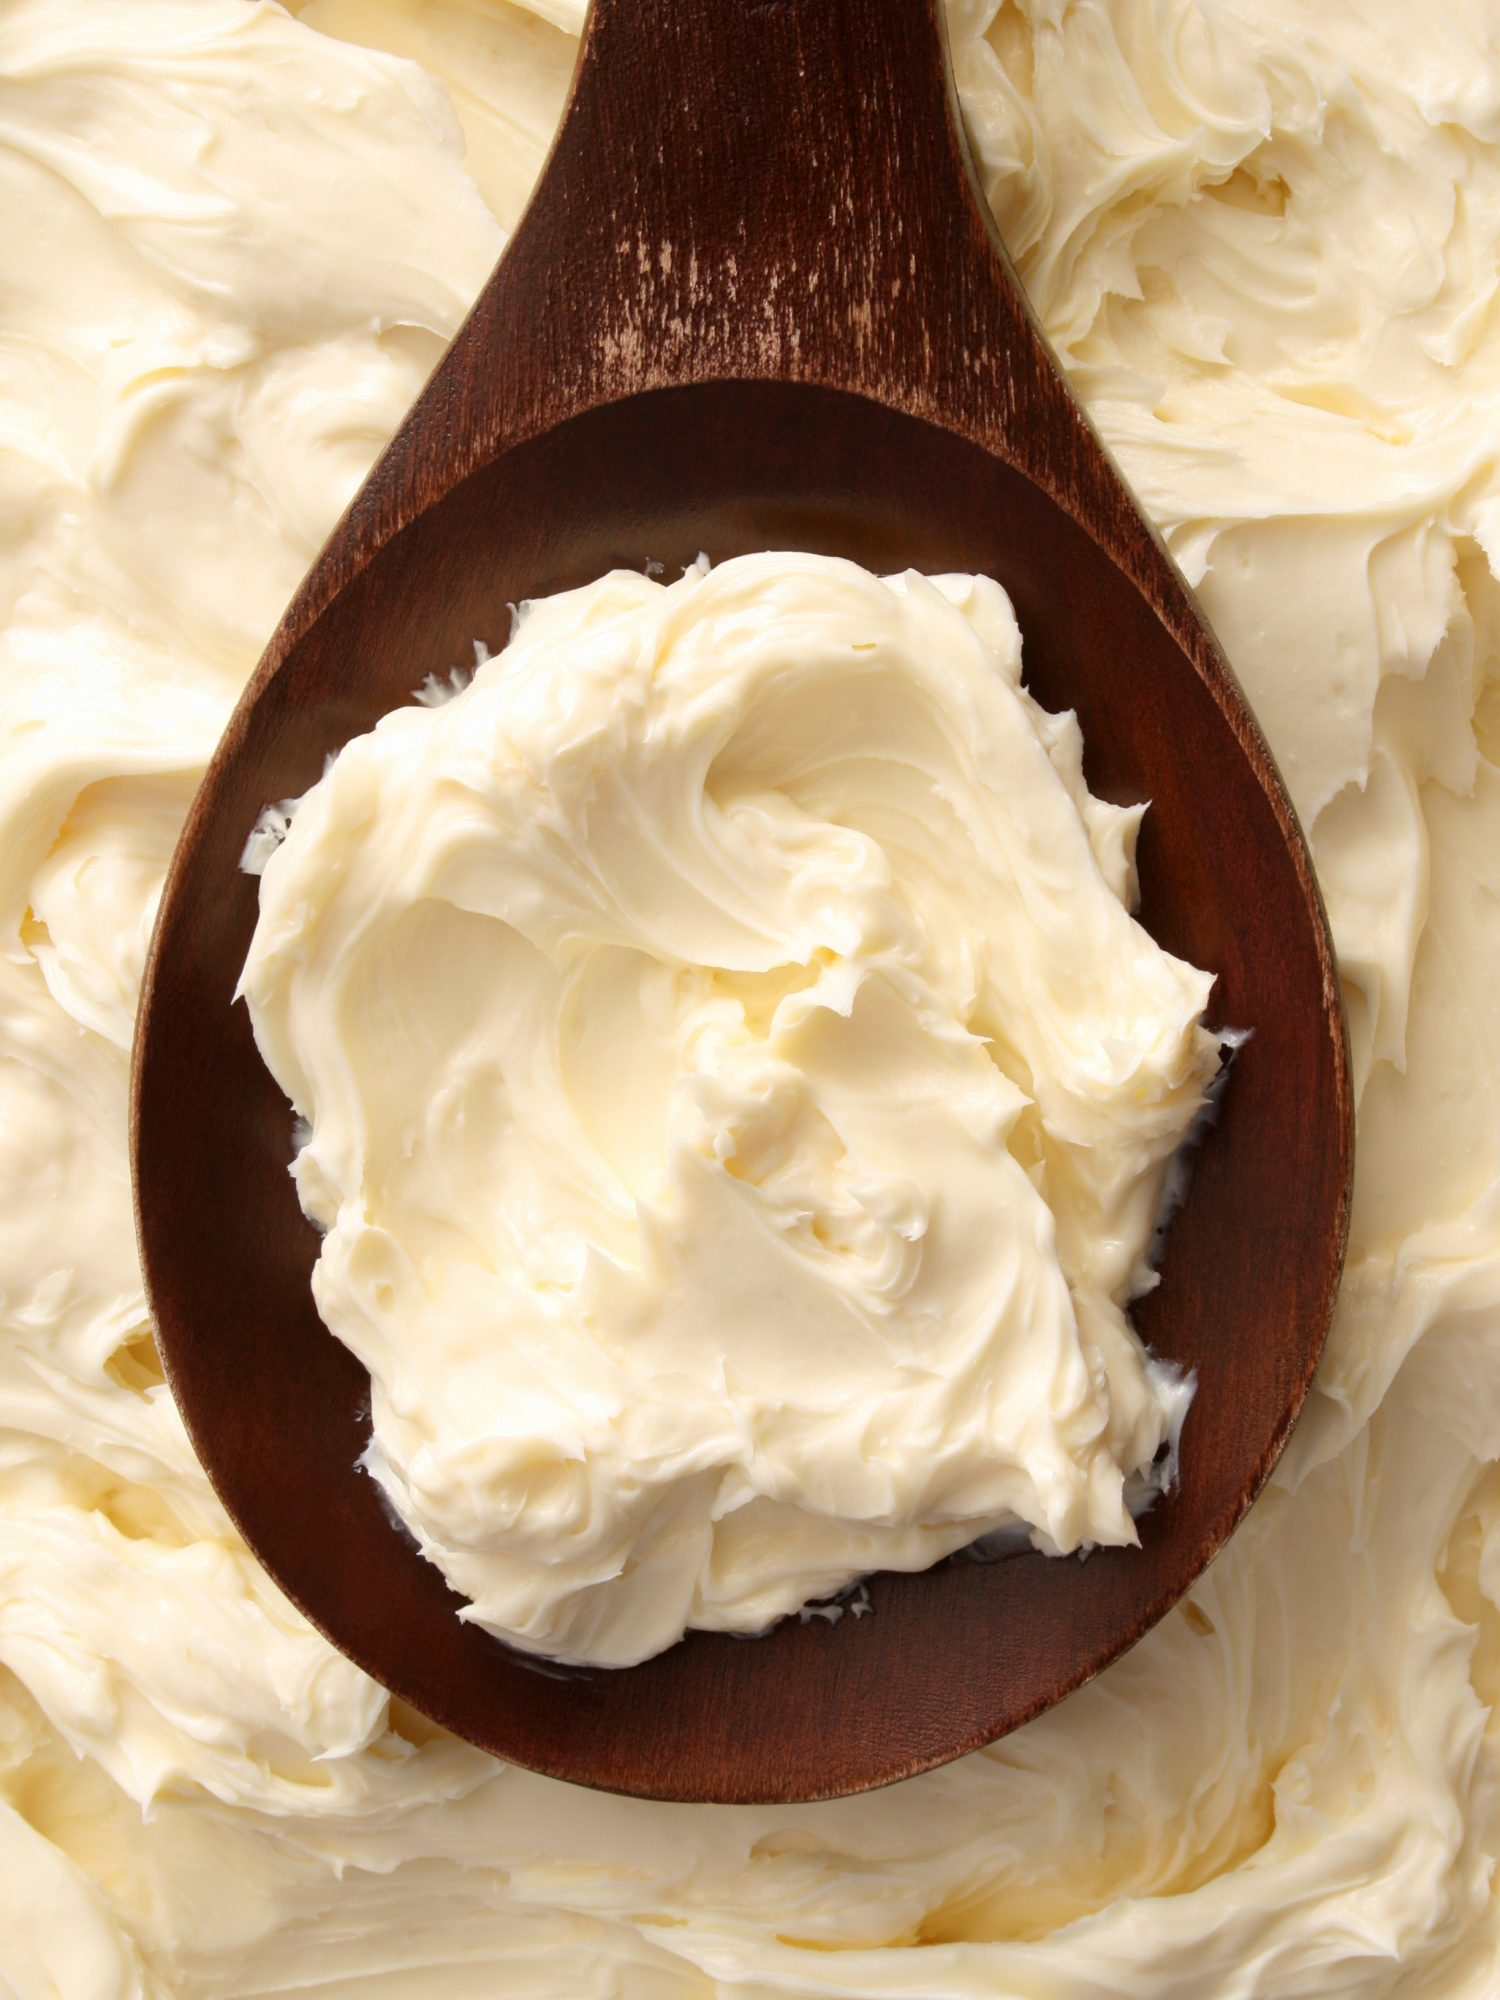 The swap: Butter for margarine